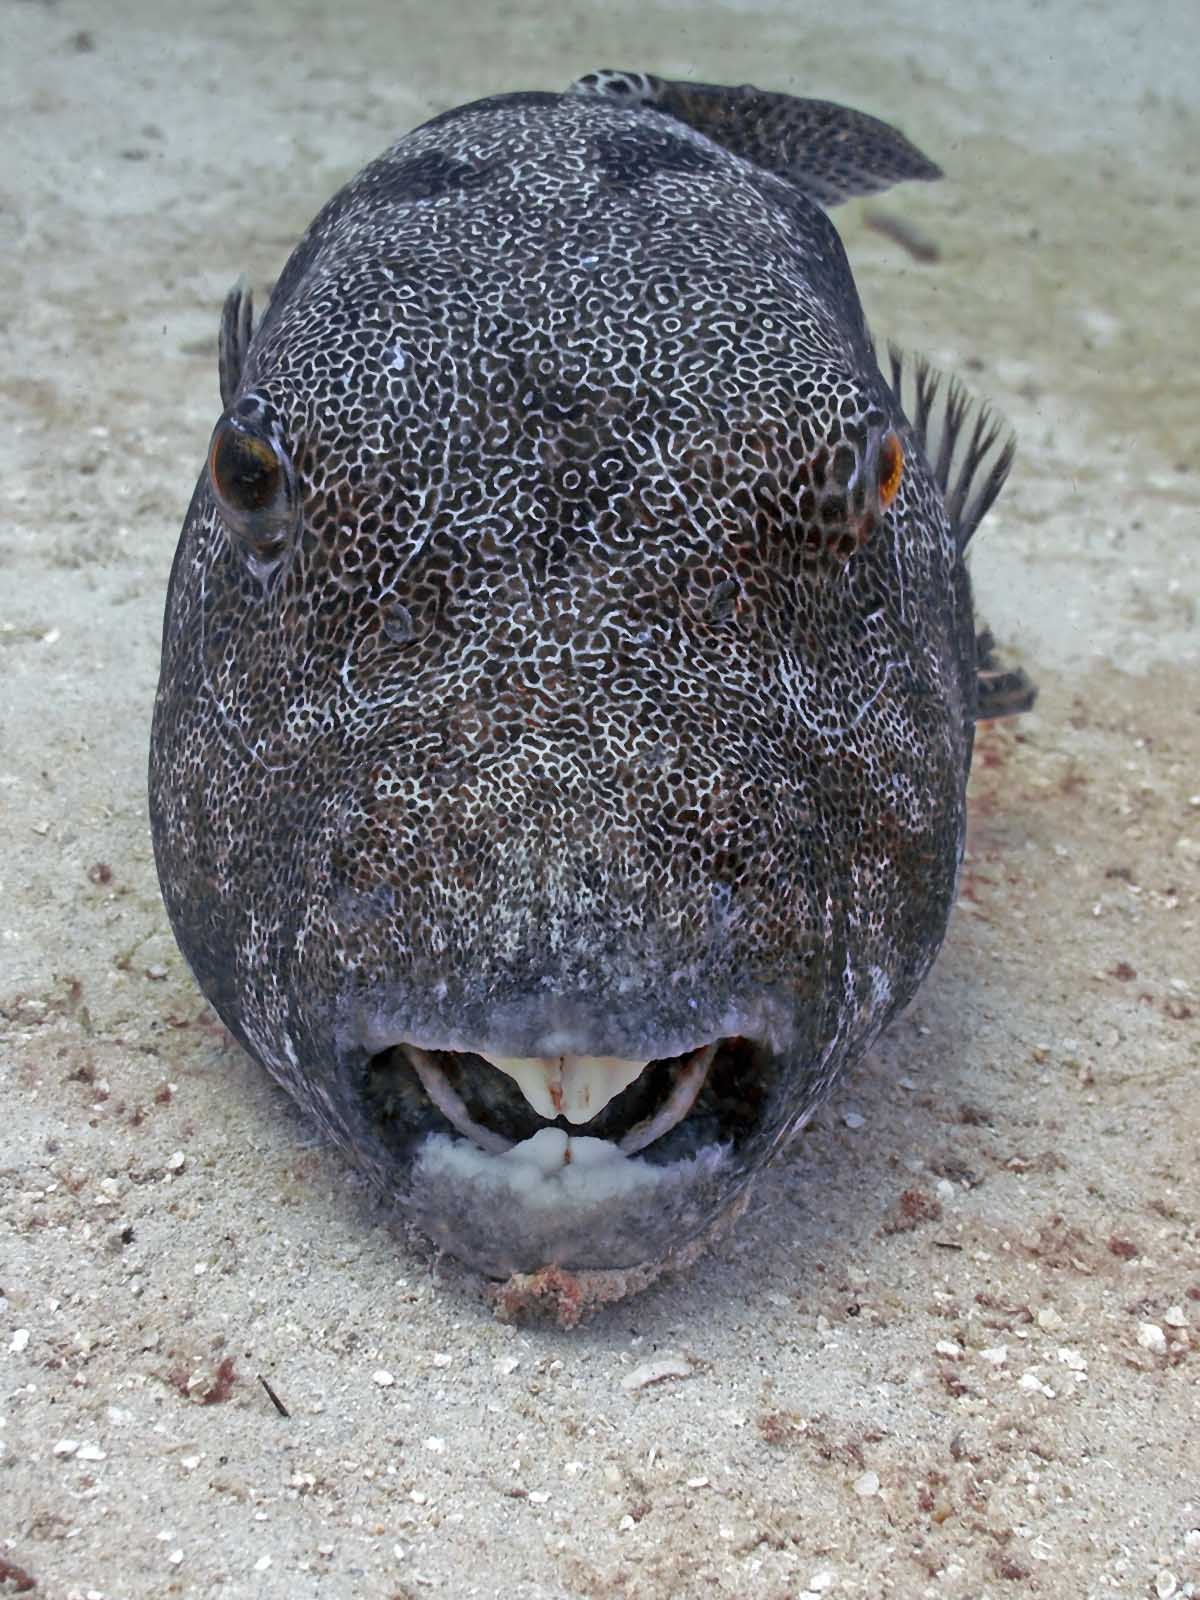 Eat a pufferfish and die madang ples bilong mi for A puffer fish